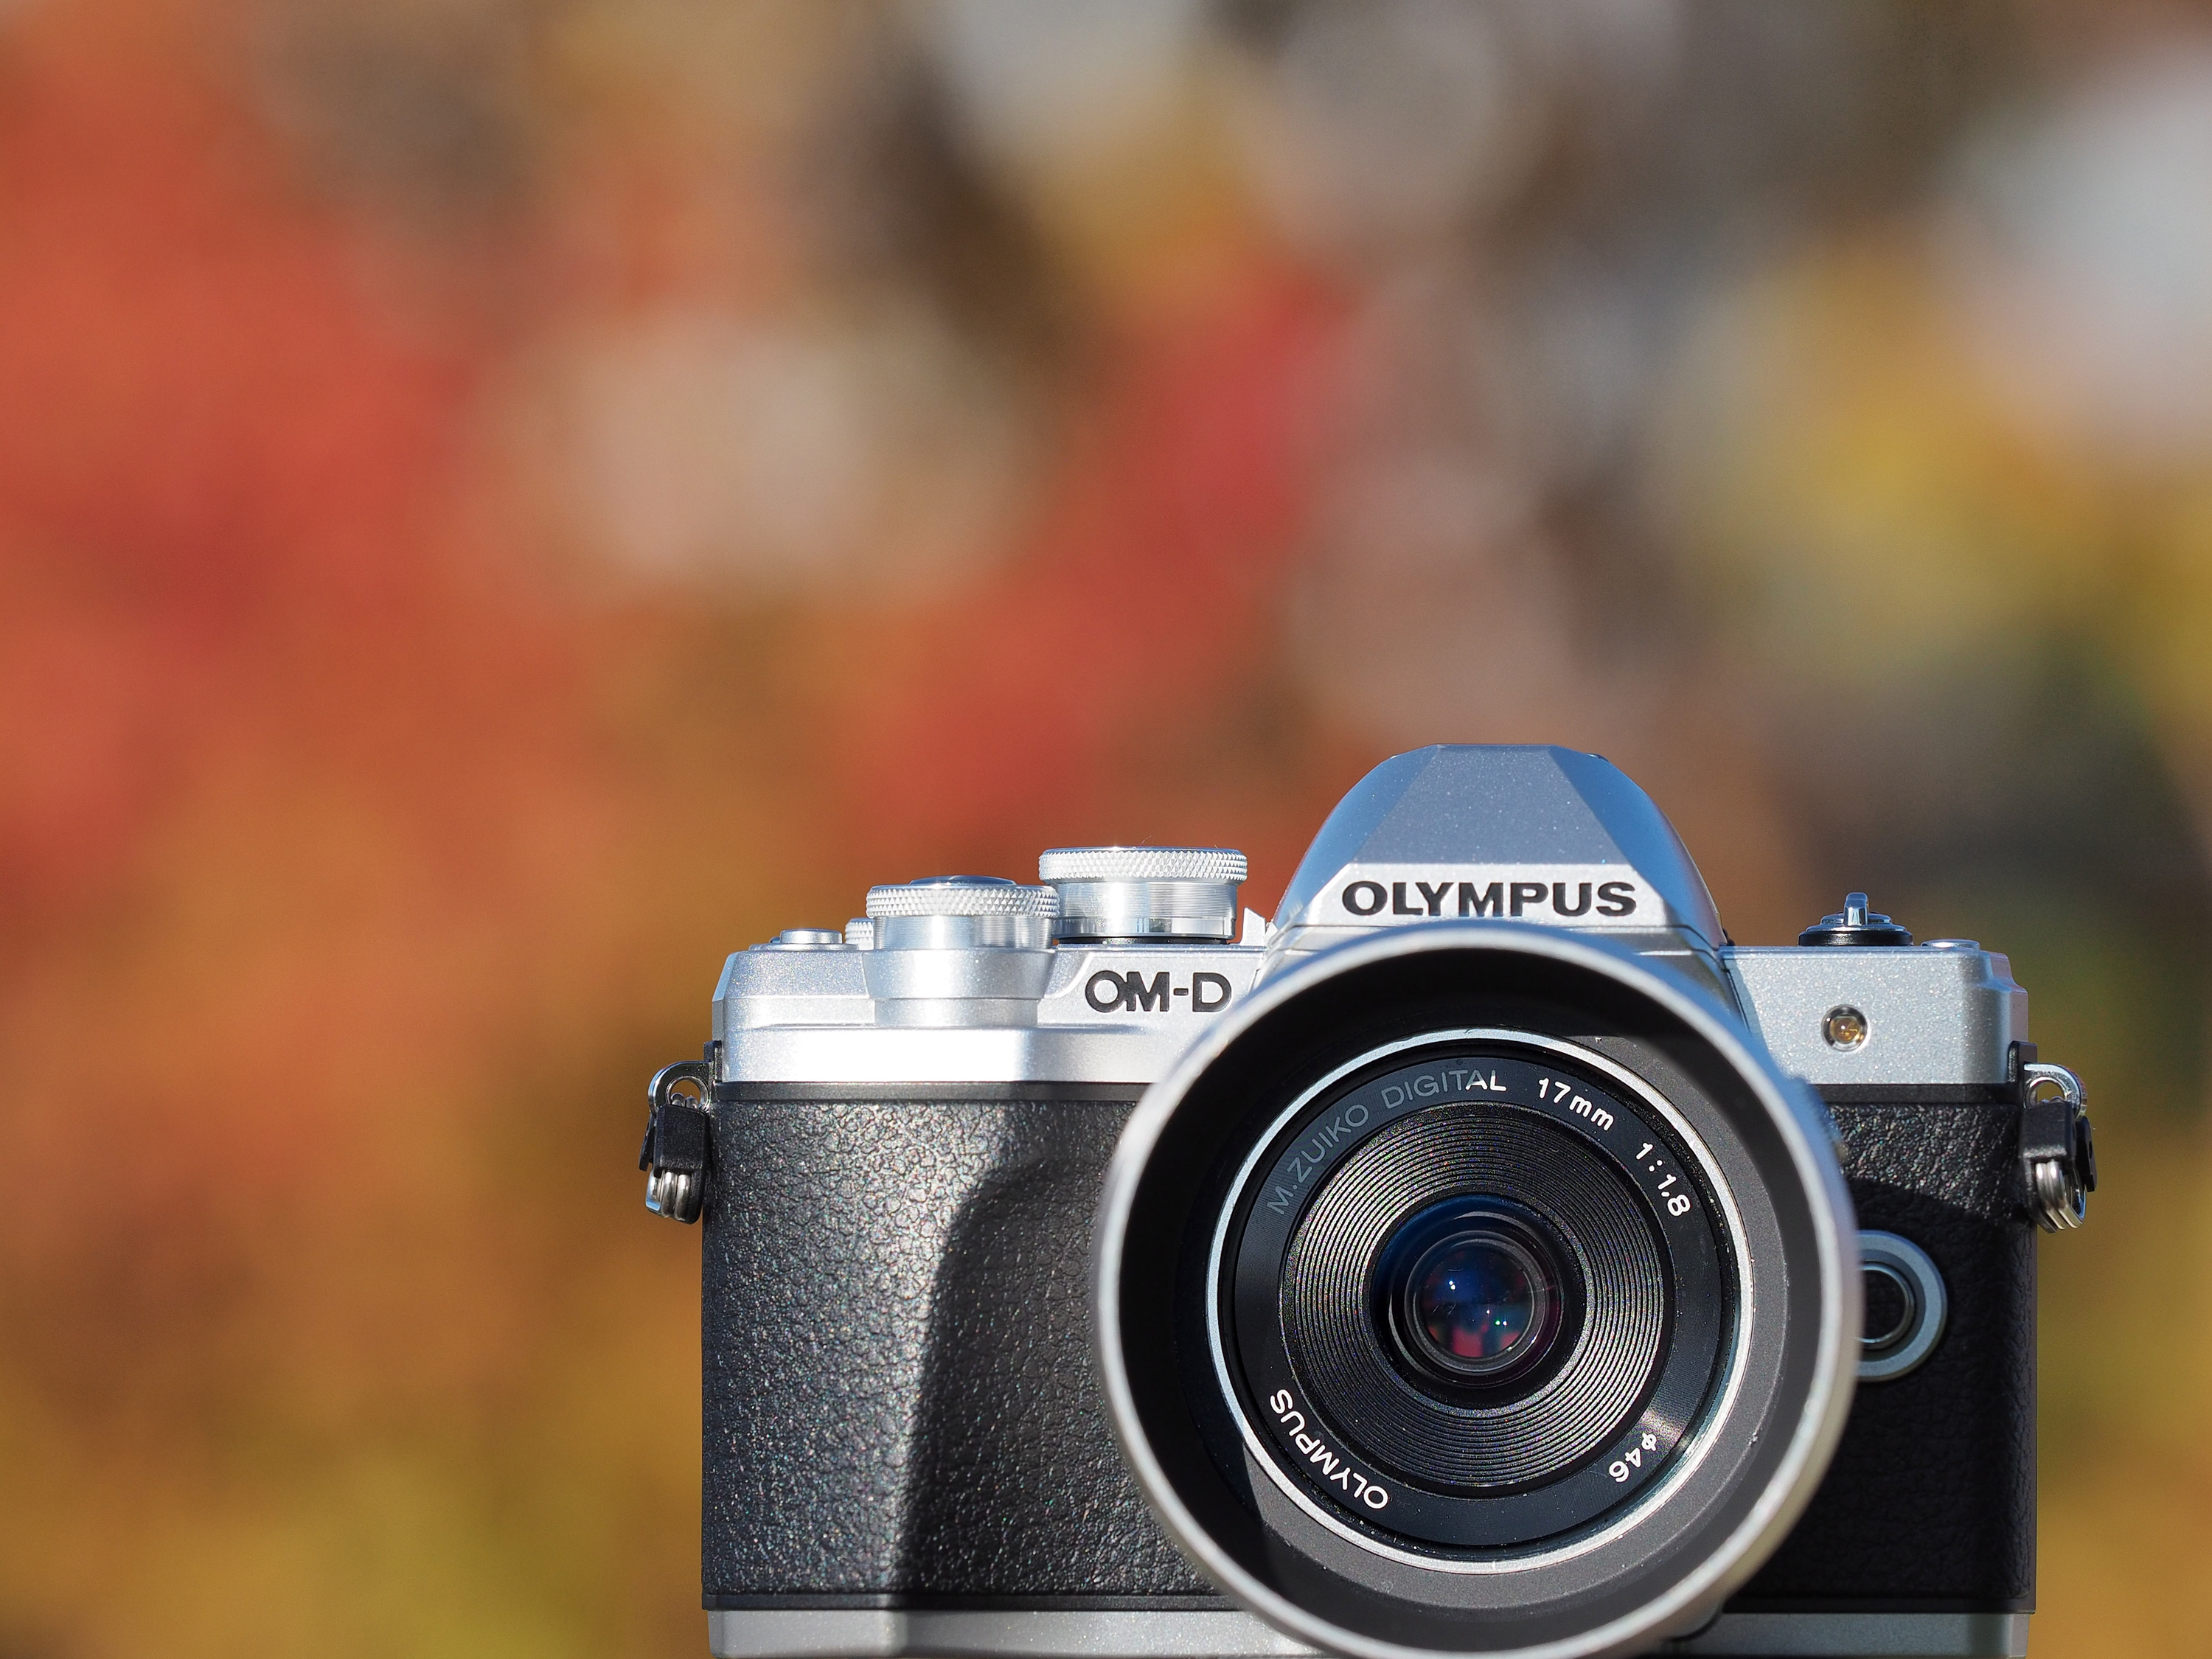 Olympus OM-D E-M10 Mark III Review: Digital Photography Review